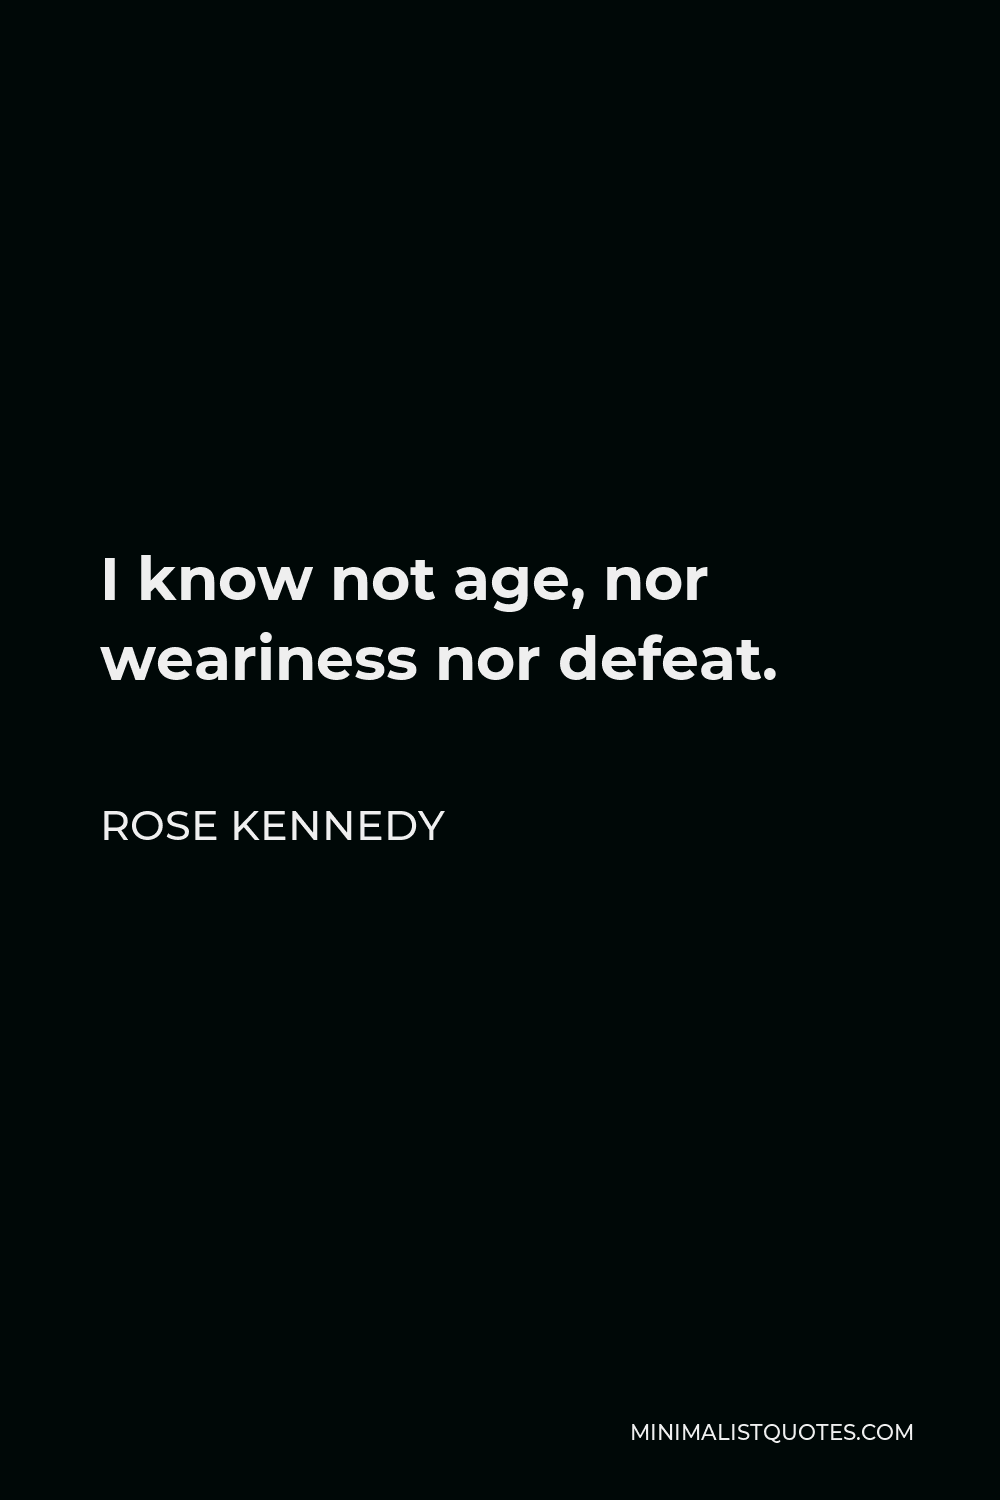 Rose Kennedy Quote - I know not age, nor weariness nor defeat.